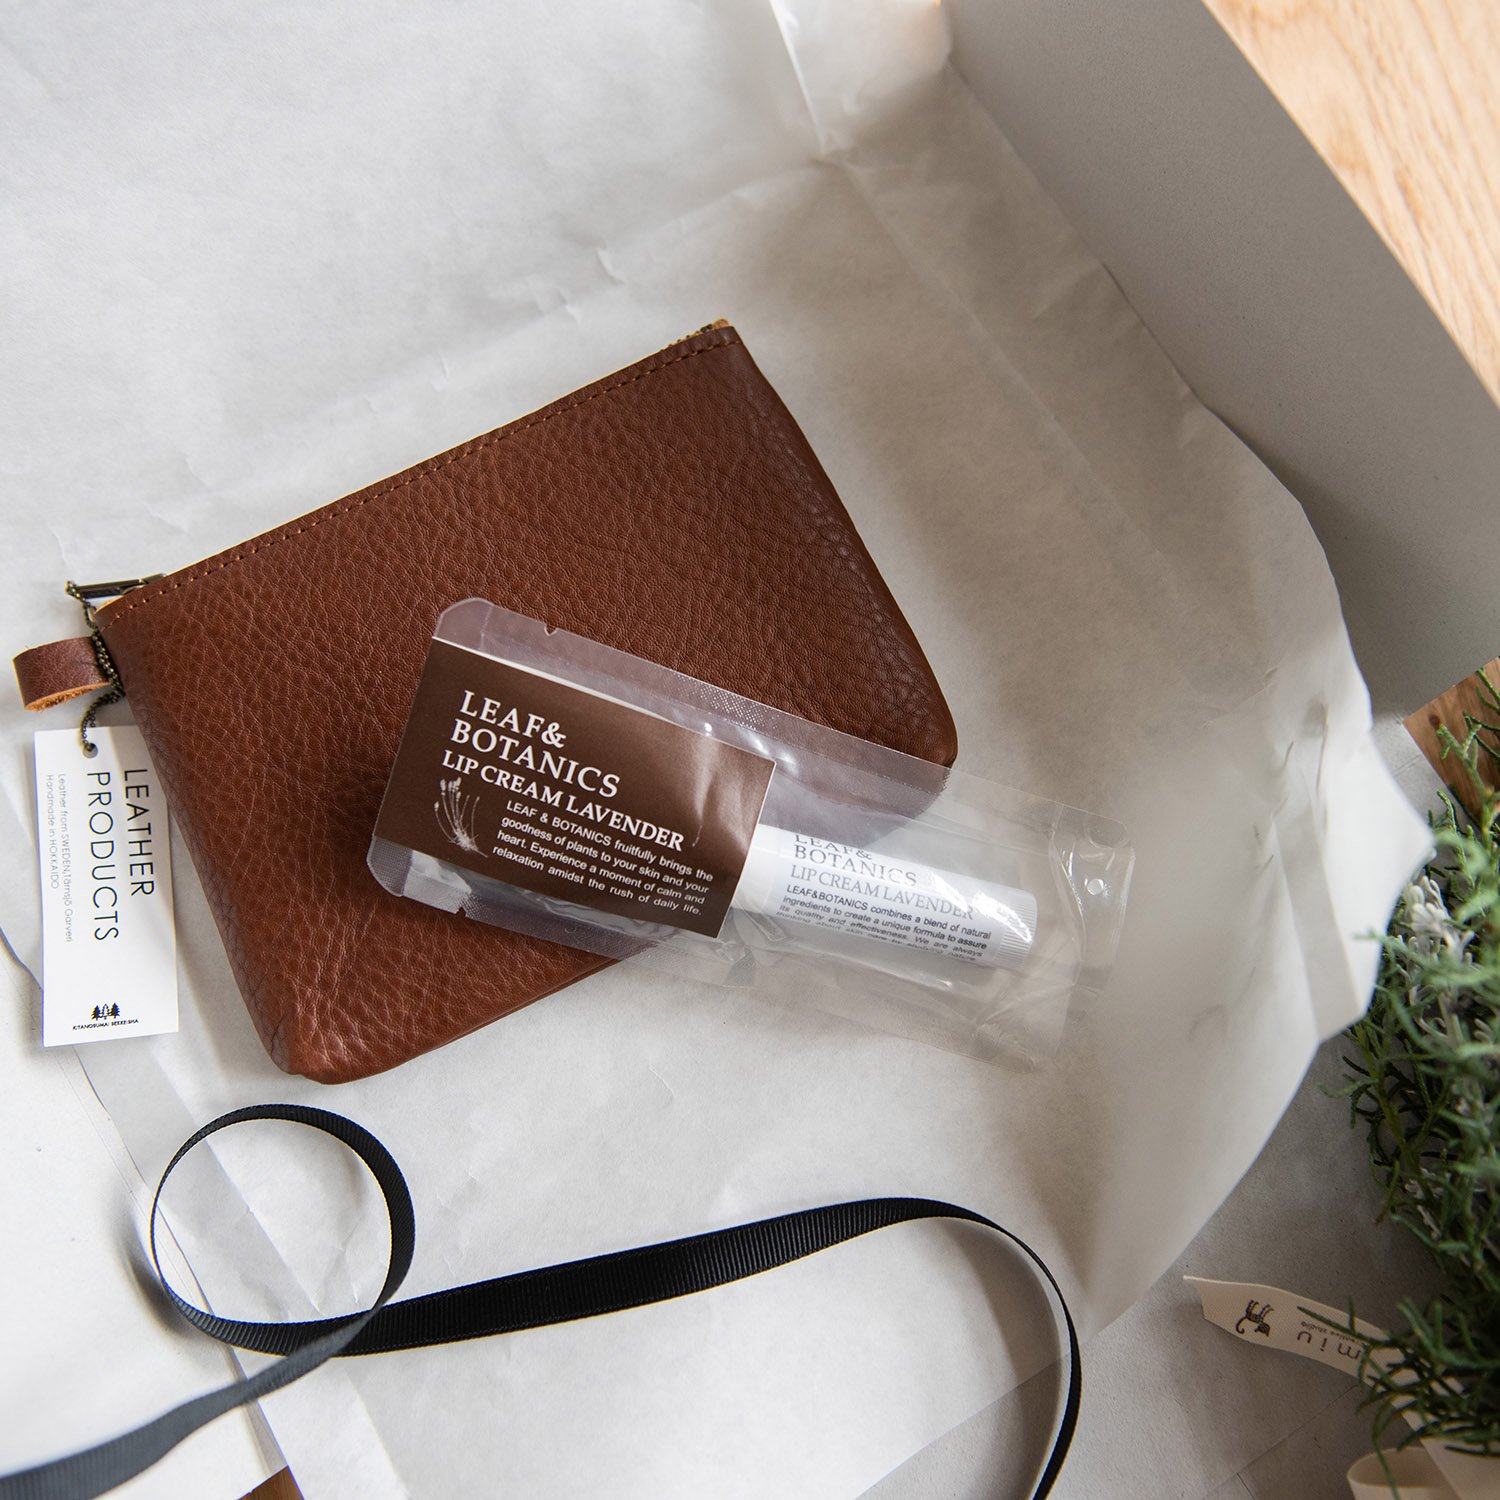 [GIFTSET]Leather pouch S & リップクリーム ギフトセット<img class='new_mark_img2' src='https://img.shop-pro.jp/img/new/icons14.gif' style='border:none;display:inline;margin:0px;padding:0px;width:auto;' />